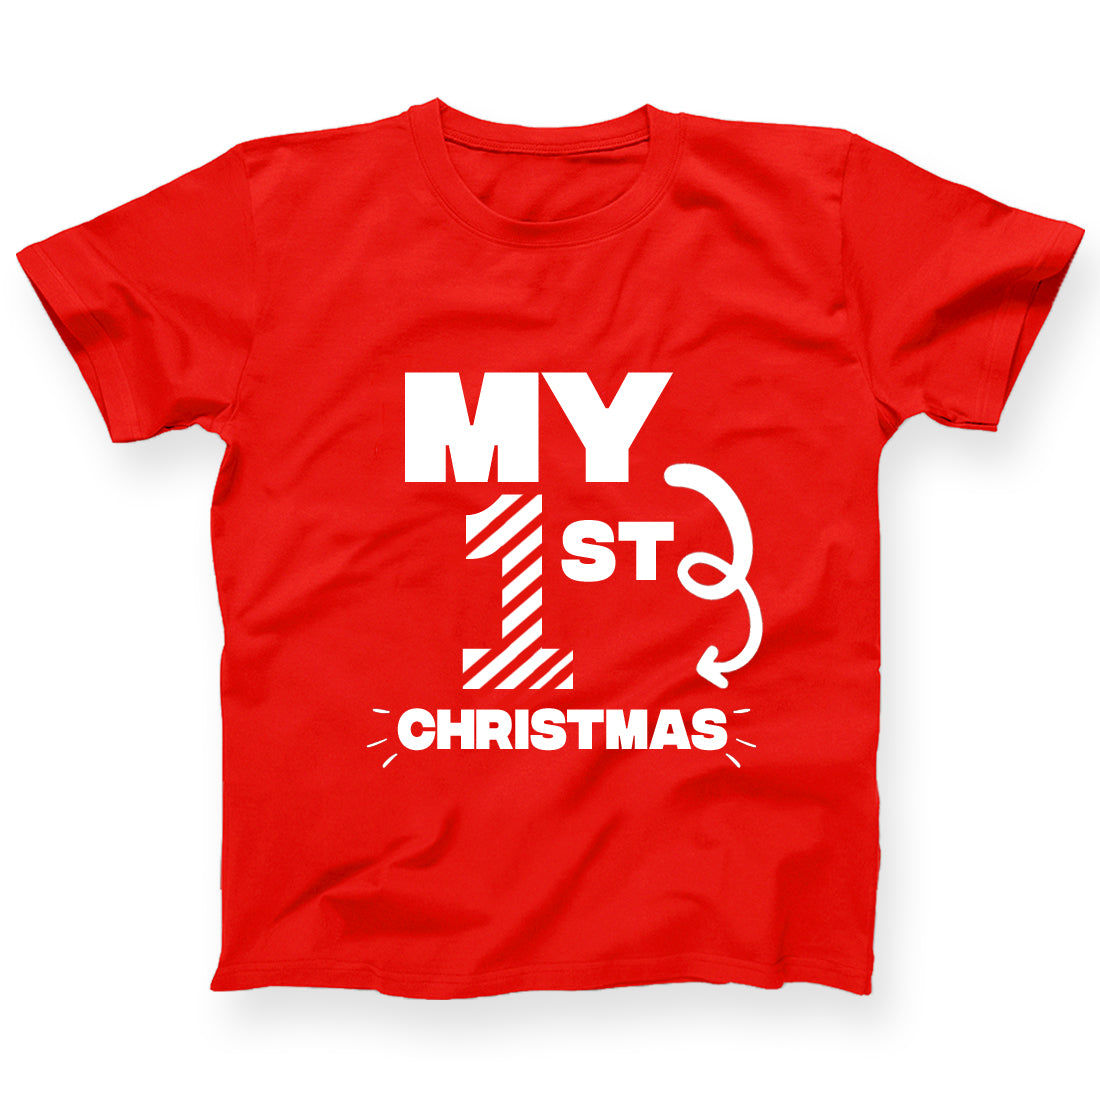 My 1st Christmas Tshirt For Kids